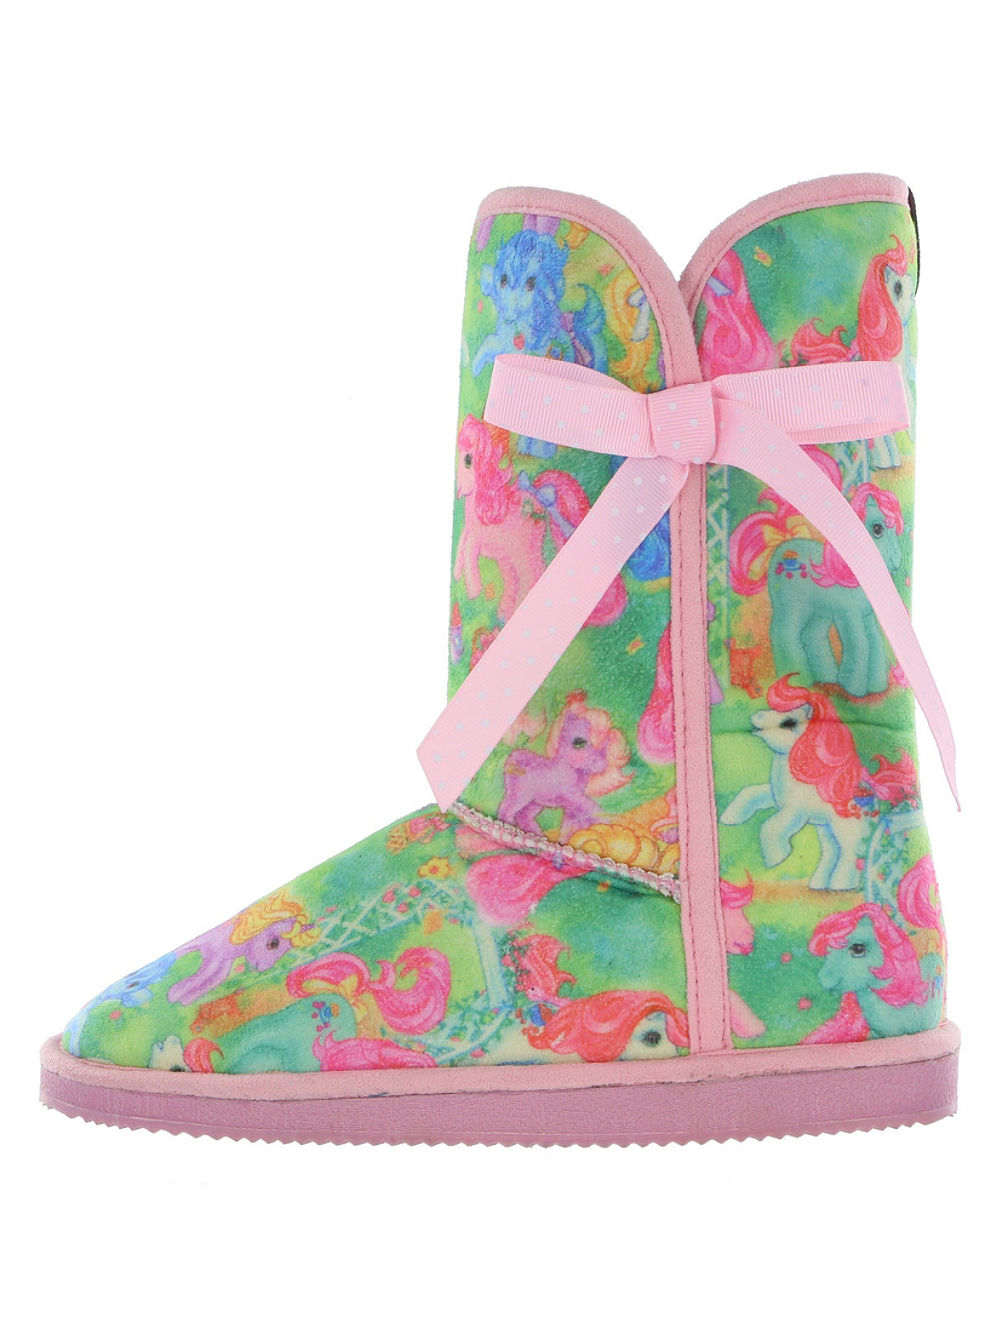 Buy Iron Fist My Little Pony Tall Fugly Boots Women online at blue ... 41a2a73e2